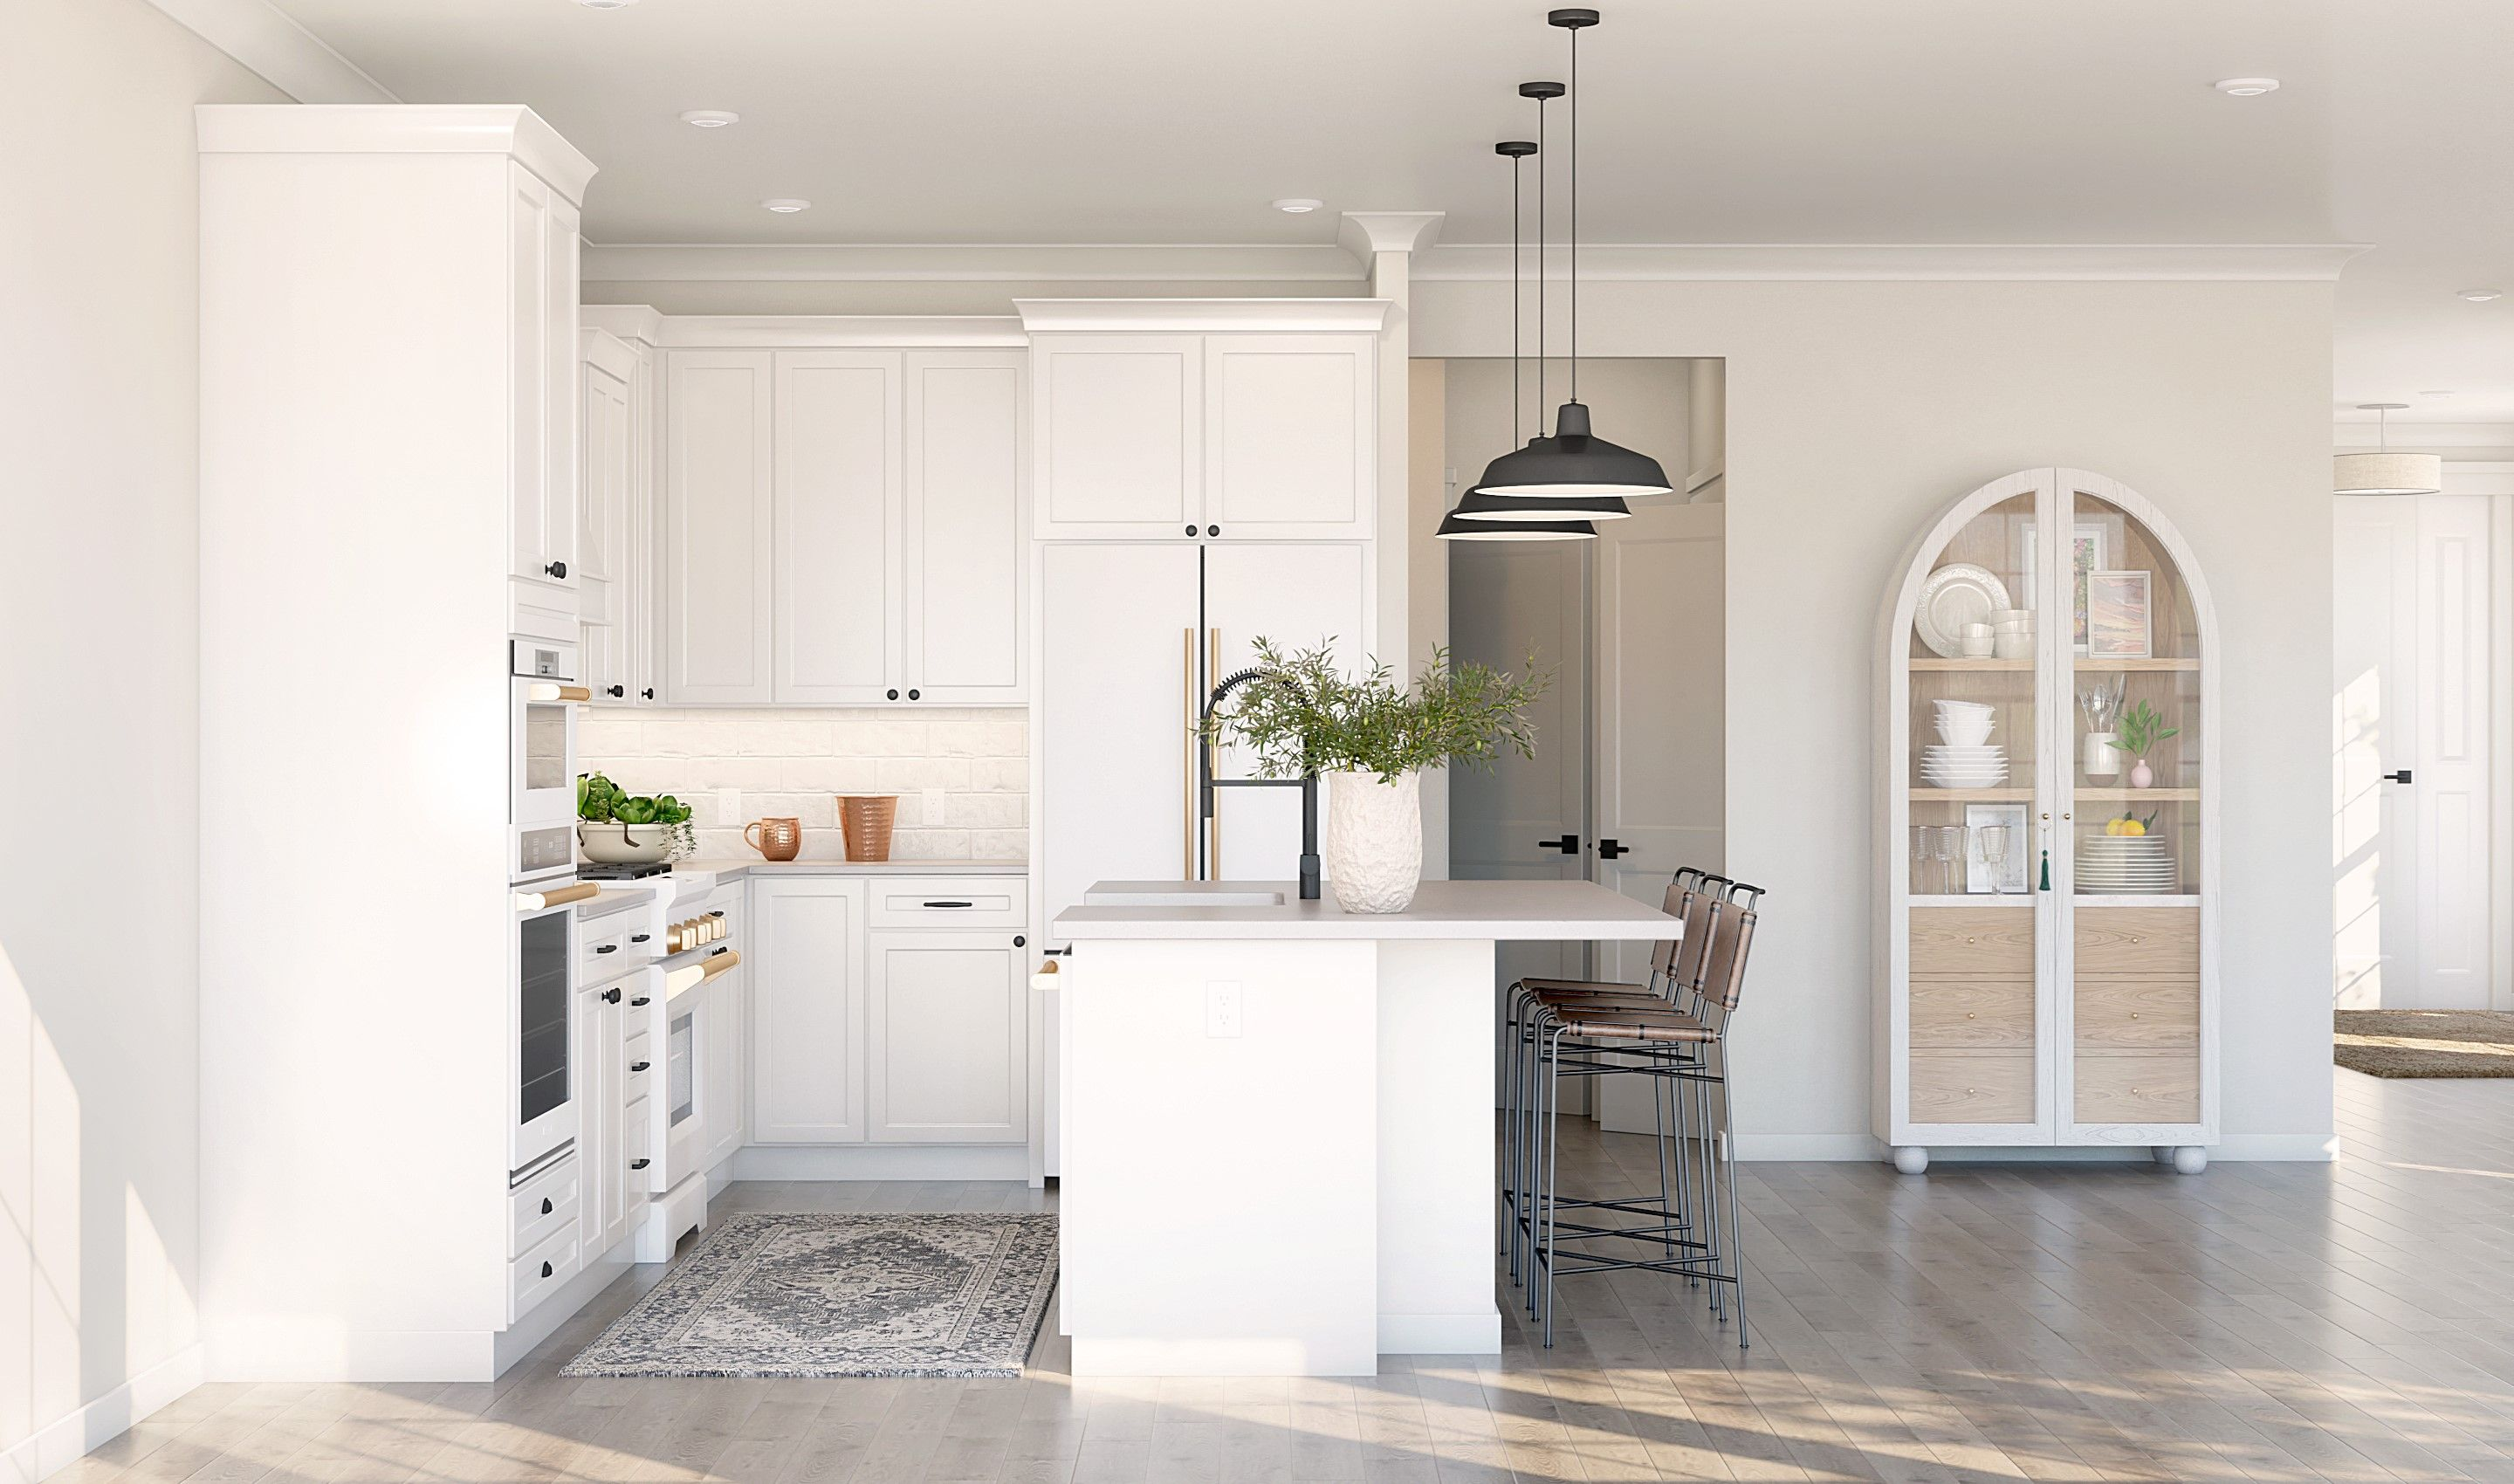 Kitchen featured in the Howard By K. Hovnanian® Homes in Bergen County, NJ